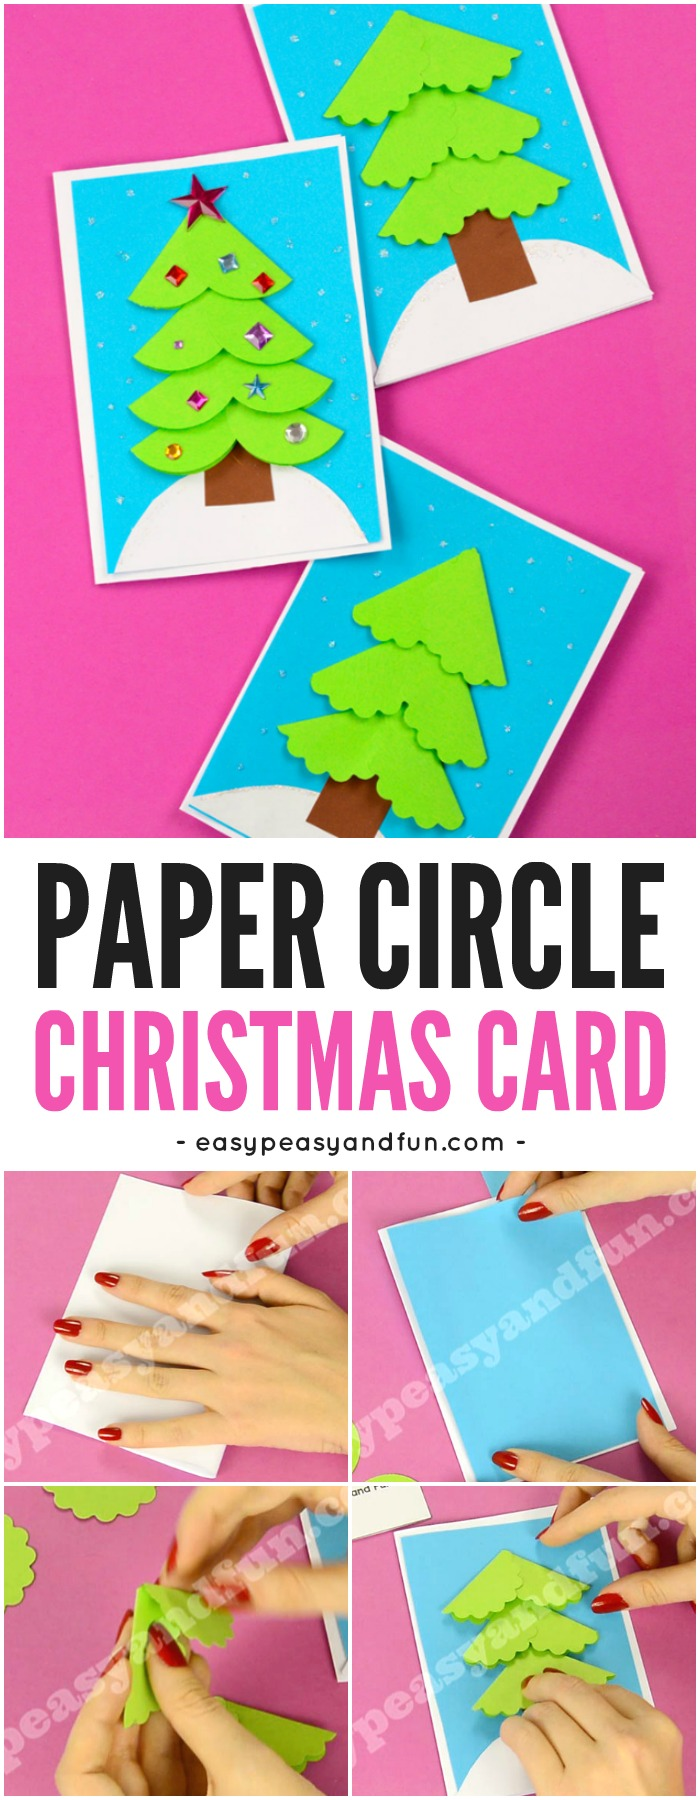 Paper Circle Homemade Christmas Card - Easy Peasy and Fun